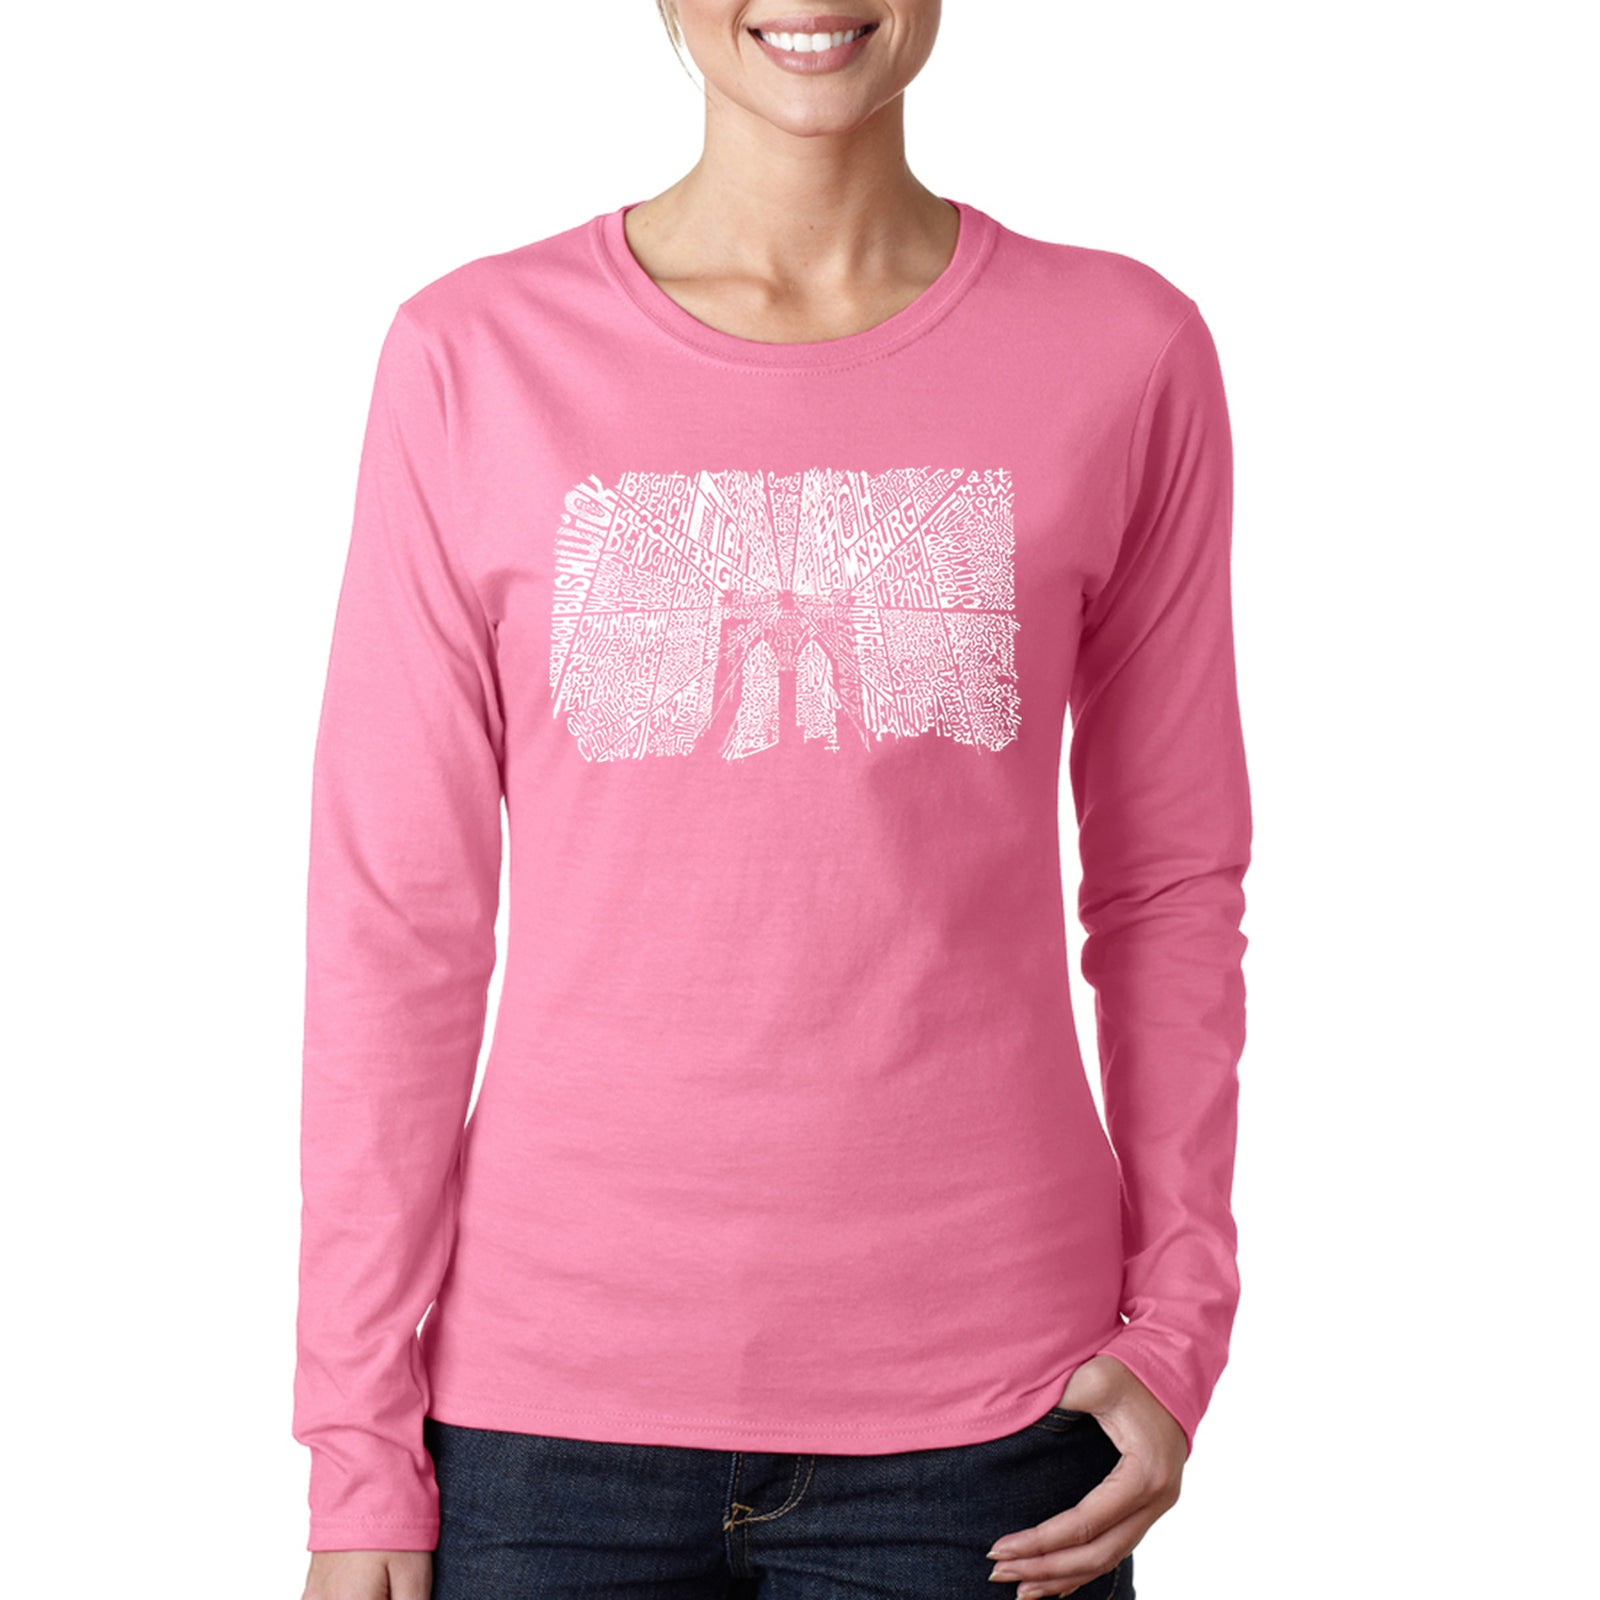 Women's Long Sleeve T-Shirt - Brooklyn Bridge